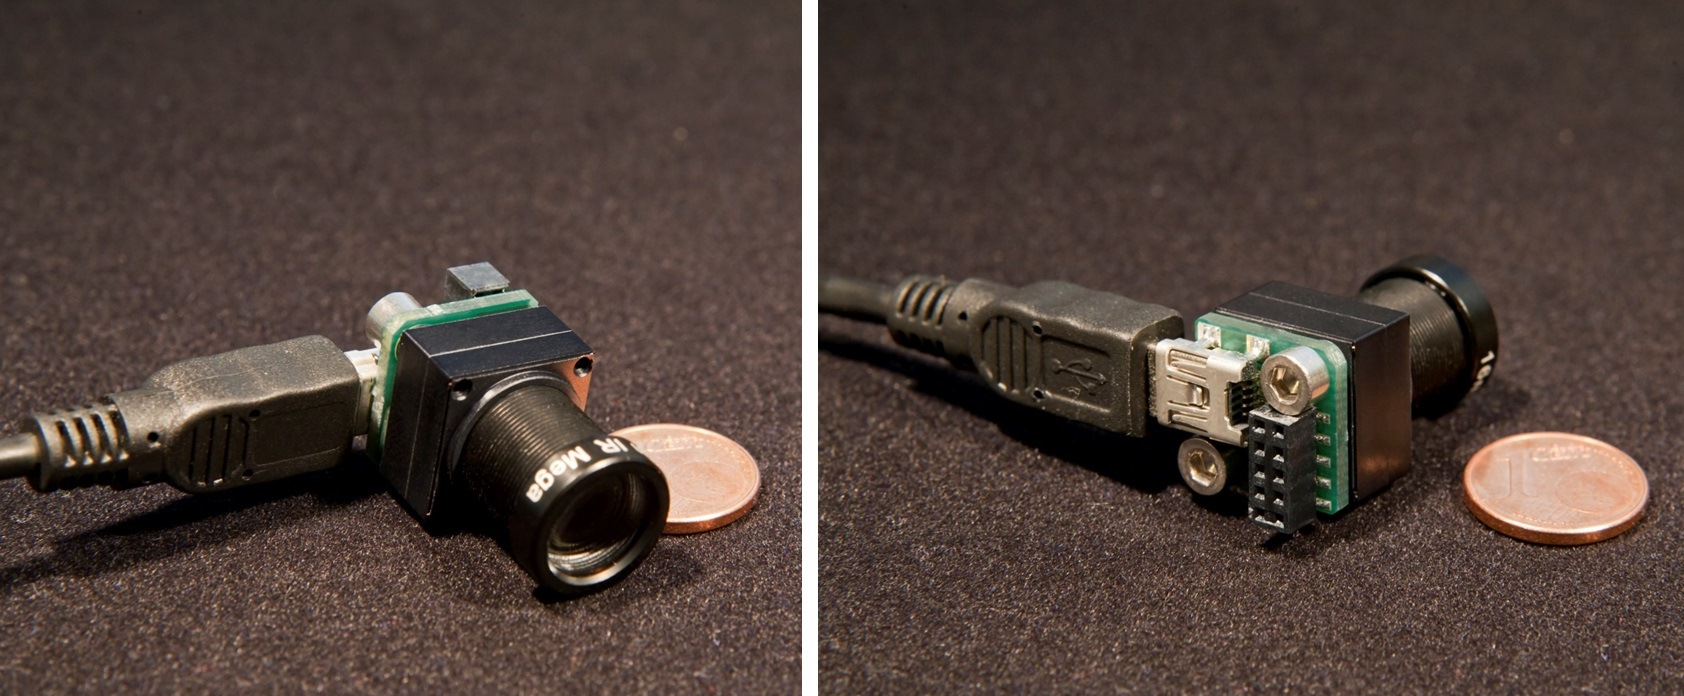 hight resolution of 3d step model adapter for standard usb 2 0 cable